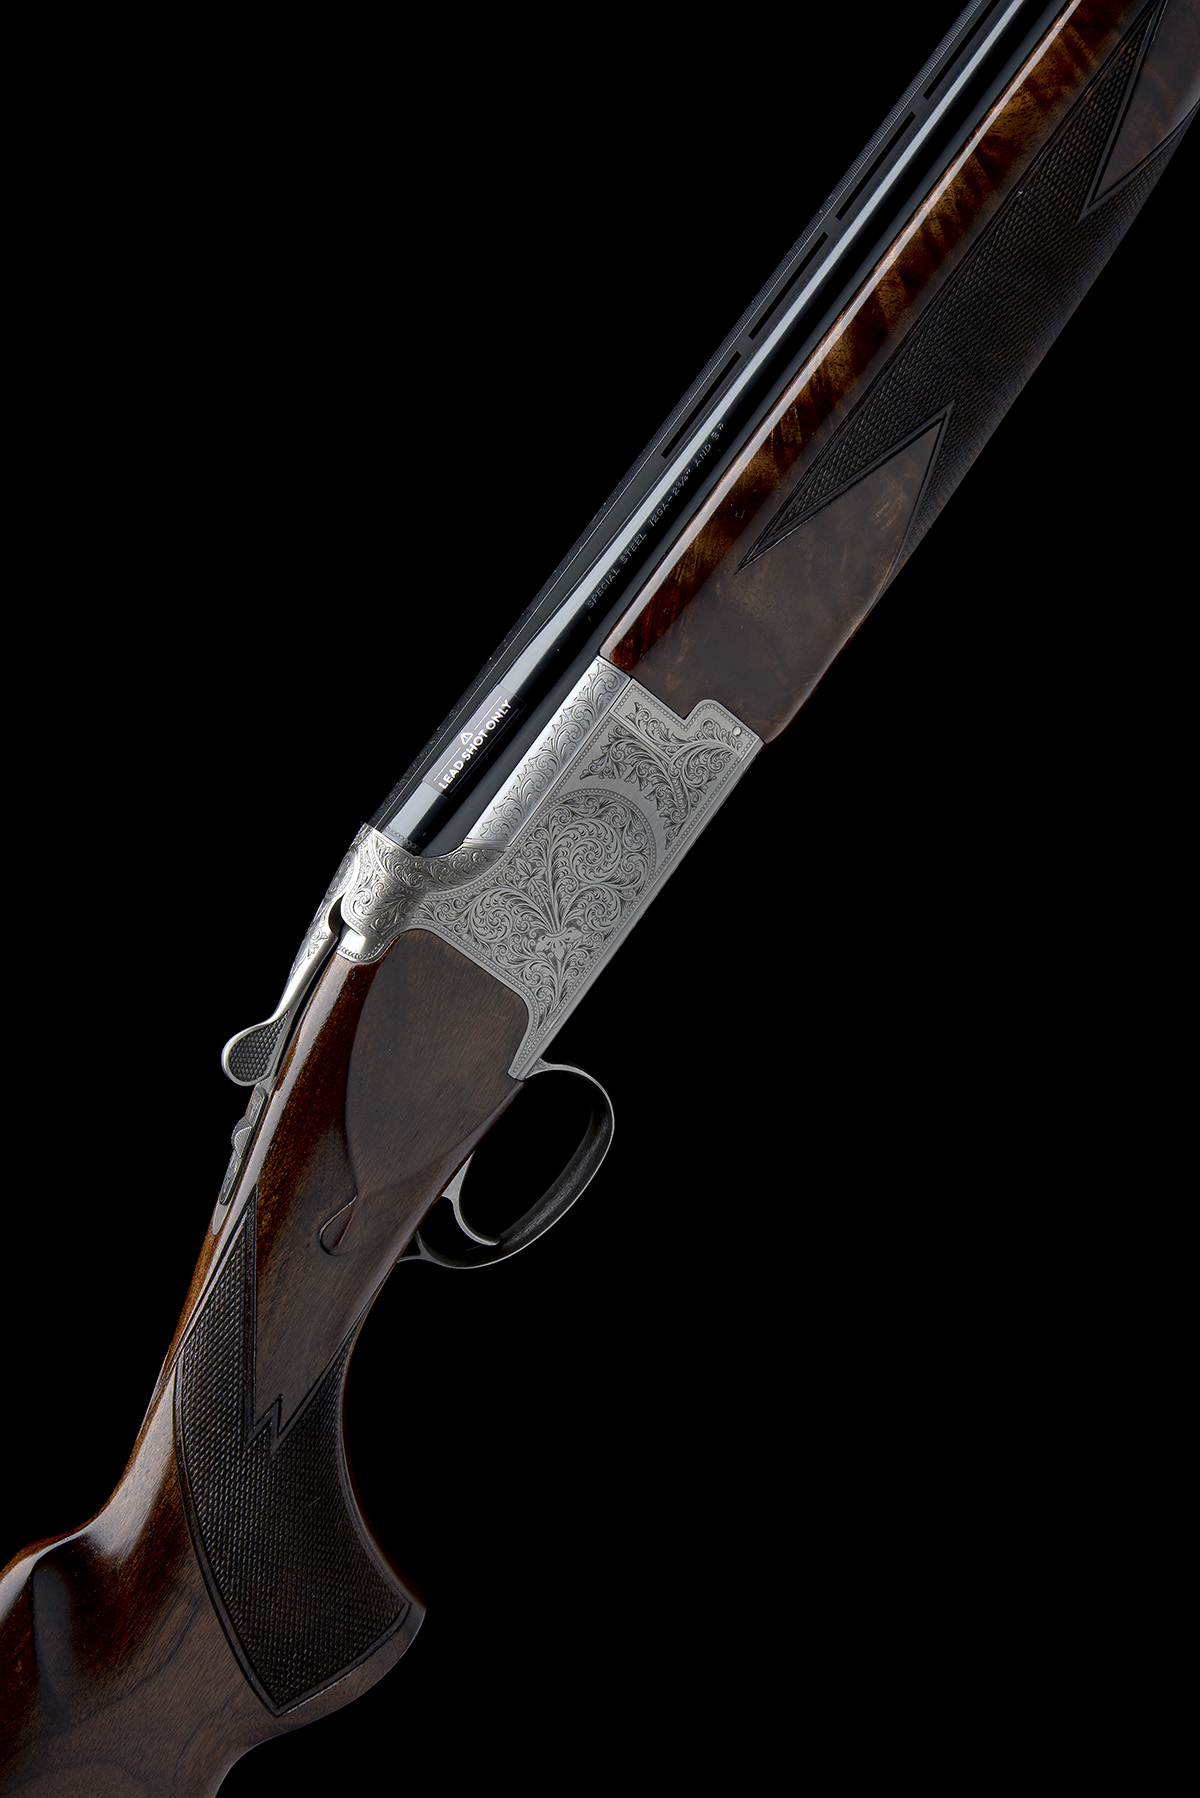 MIROKU FIREARMS MFG. CO. A NEW AND UNUSED 12-BORE 'MK 60 SPORT GRADE 5' SINGLE-TRIGGER OVER AND